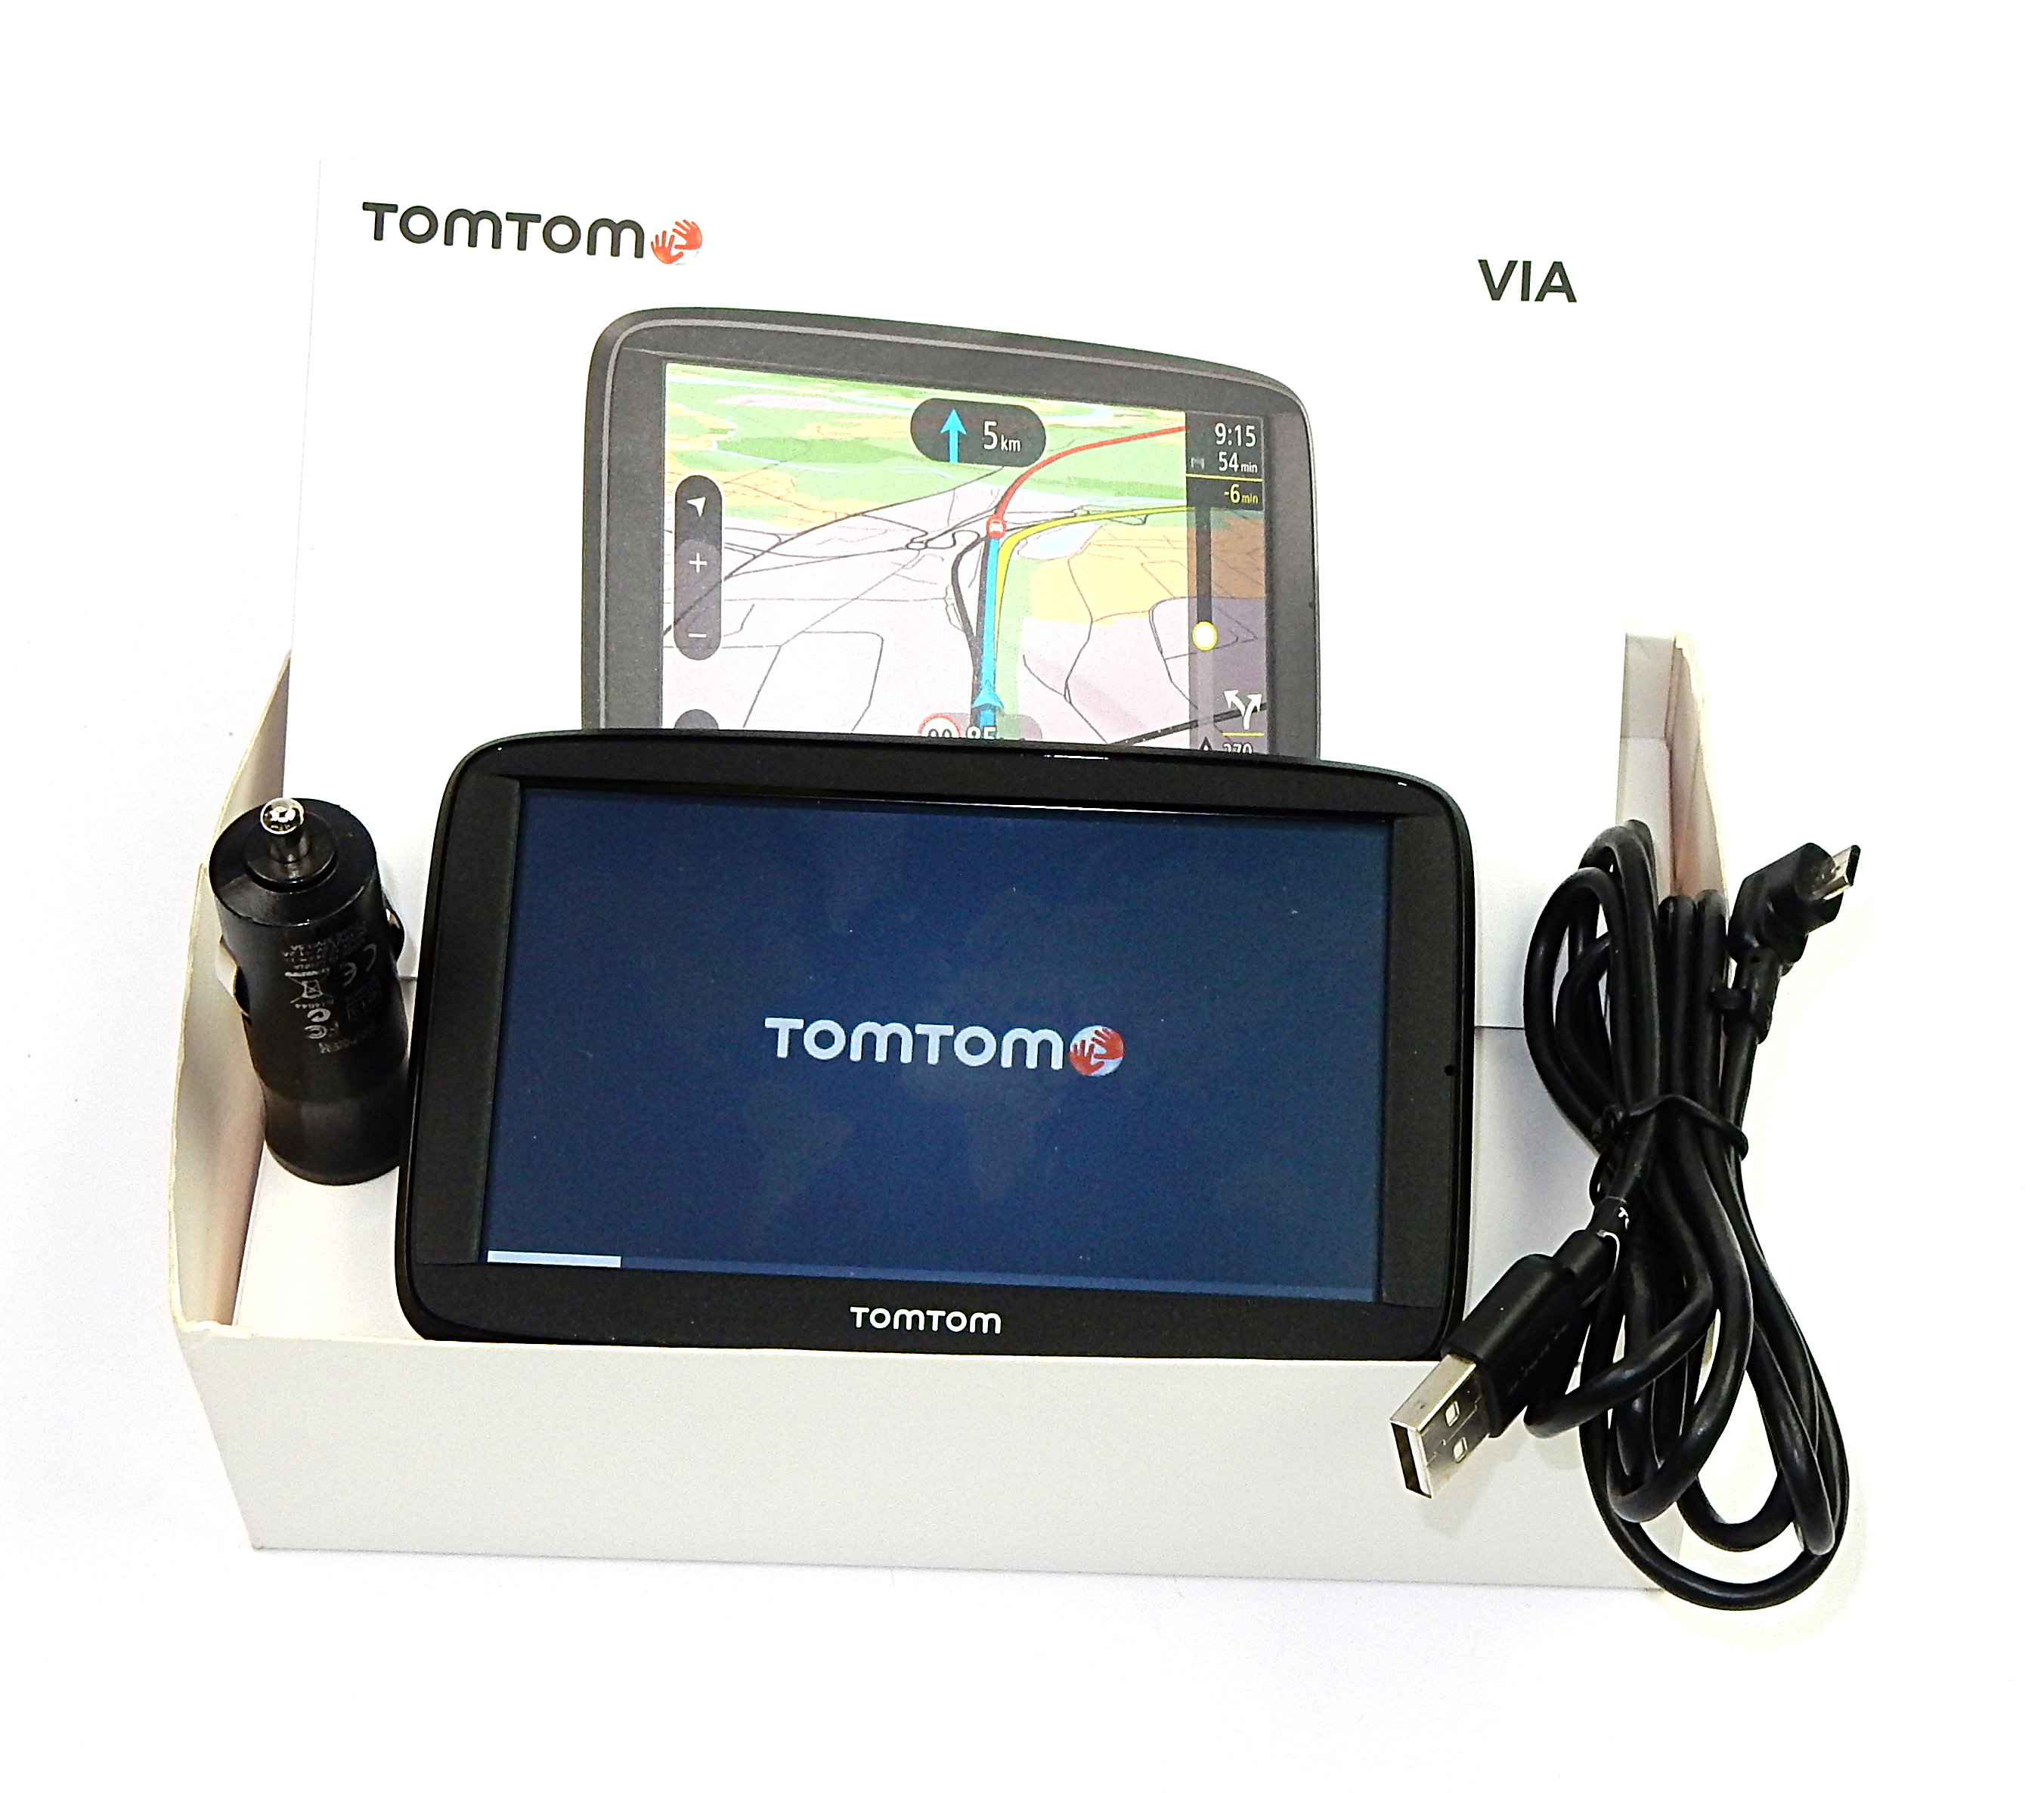 tomtom via 52 sat nav with western europe maps 4ap54. Black Bedroom Furniture Sets. Home Design Ideas